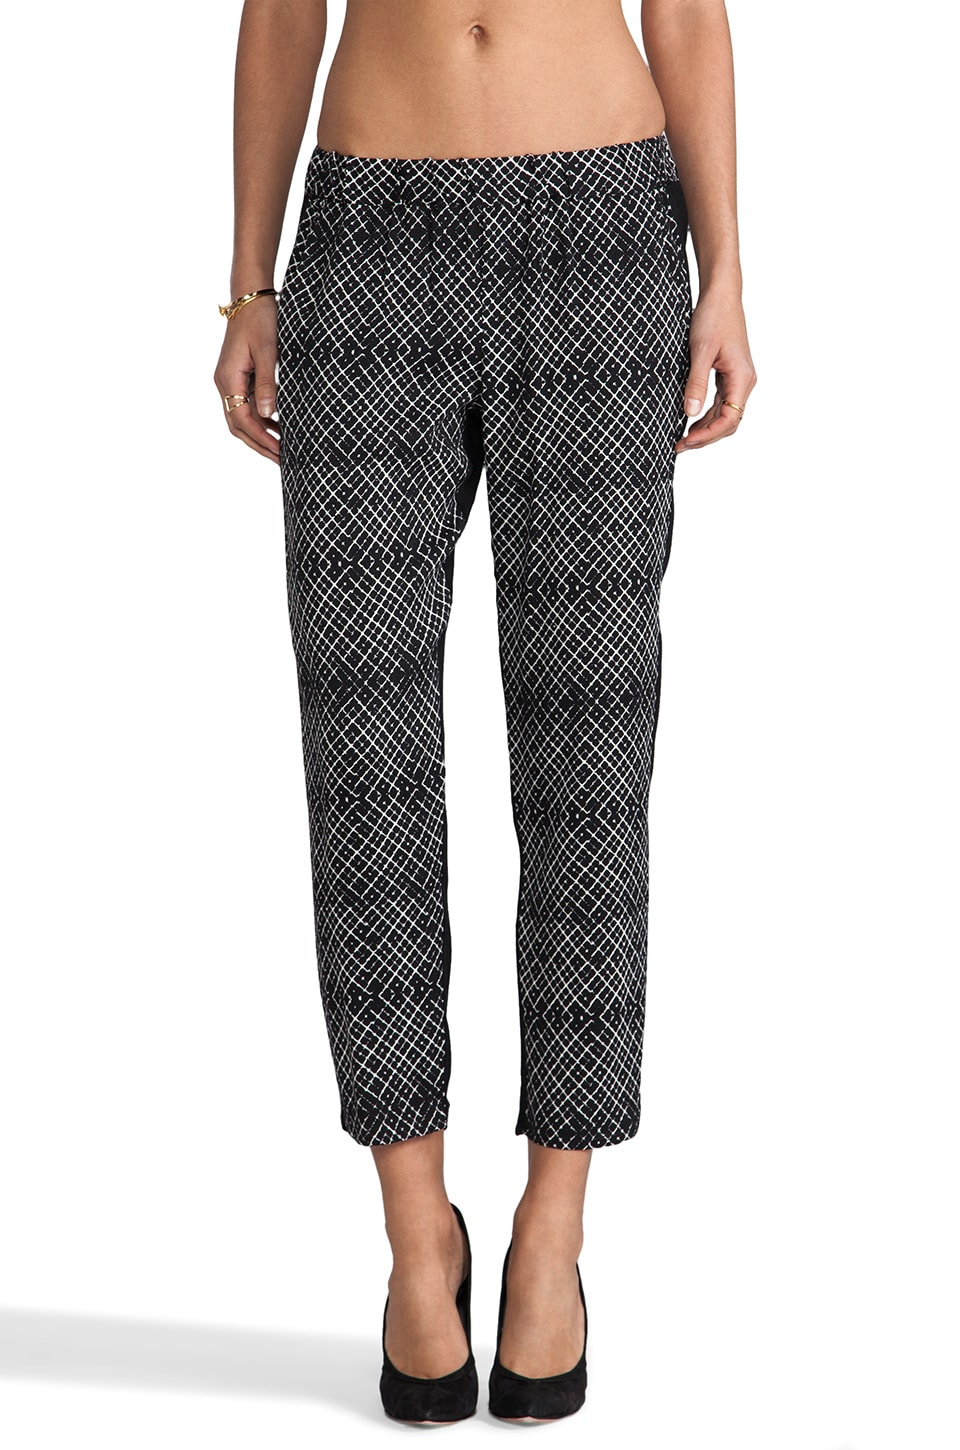 Ella Moss Kori Pants in Natural & Black